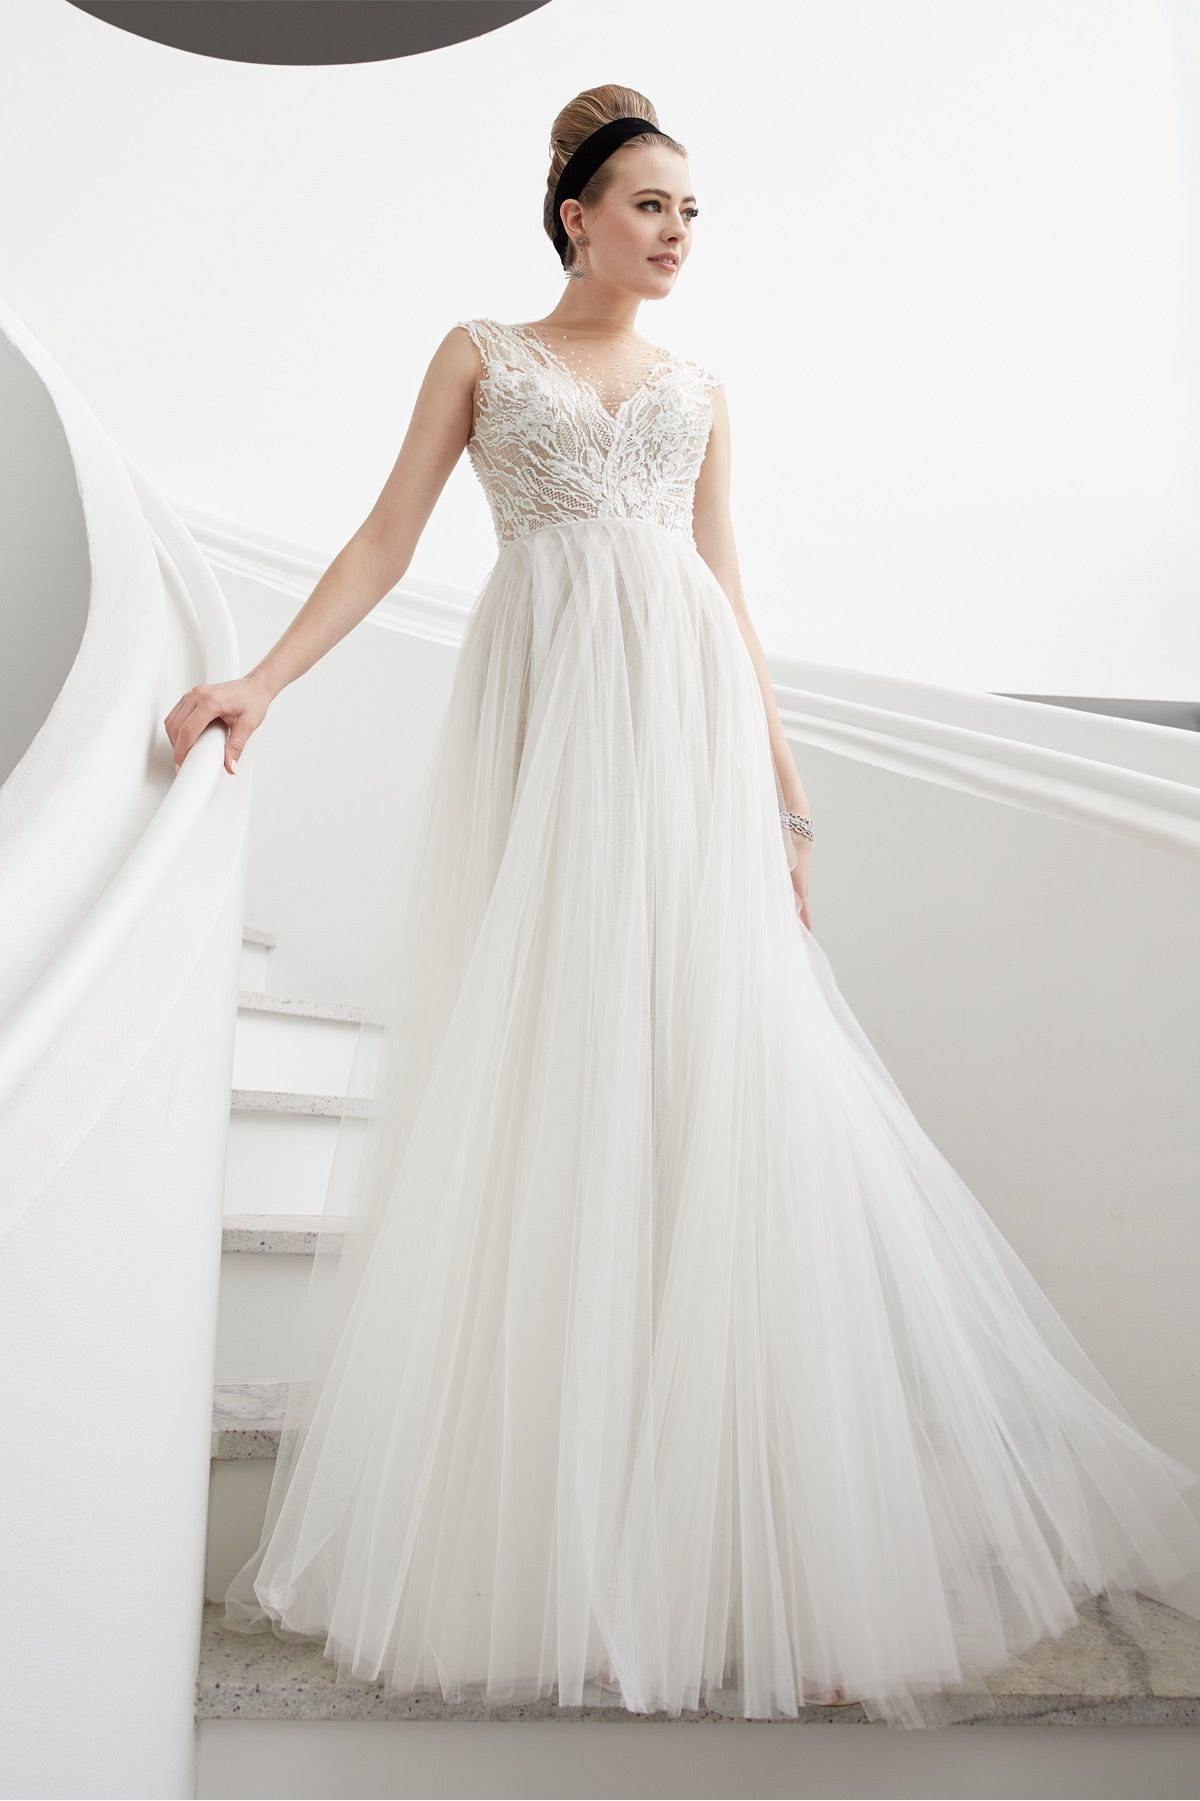 Model in bridal ballgown with tulle skirt and an embroidered illusion neckline